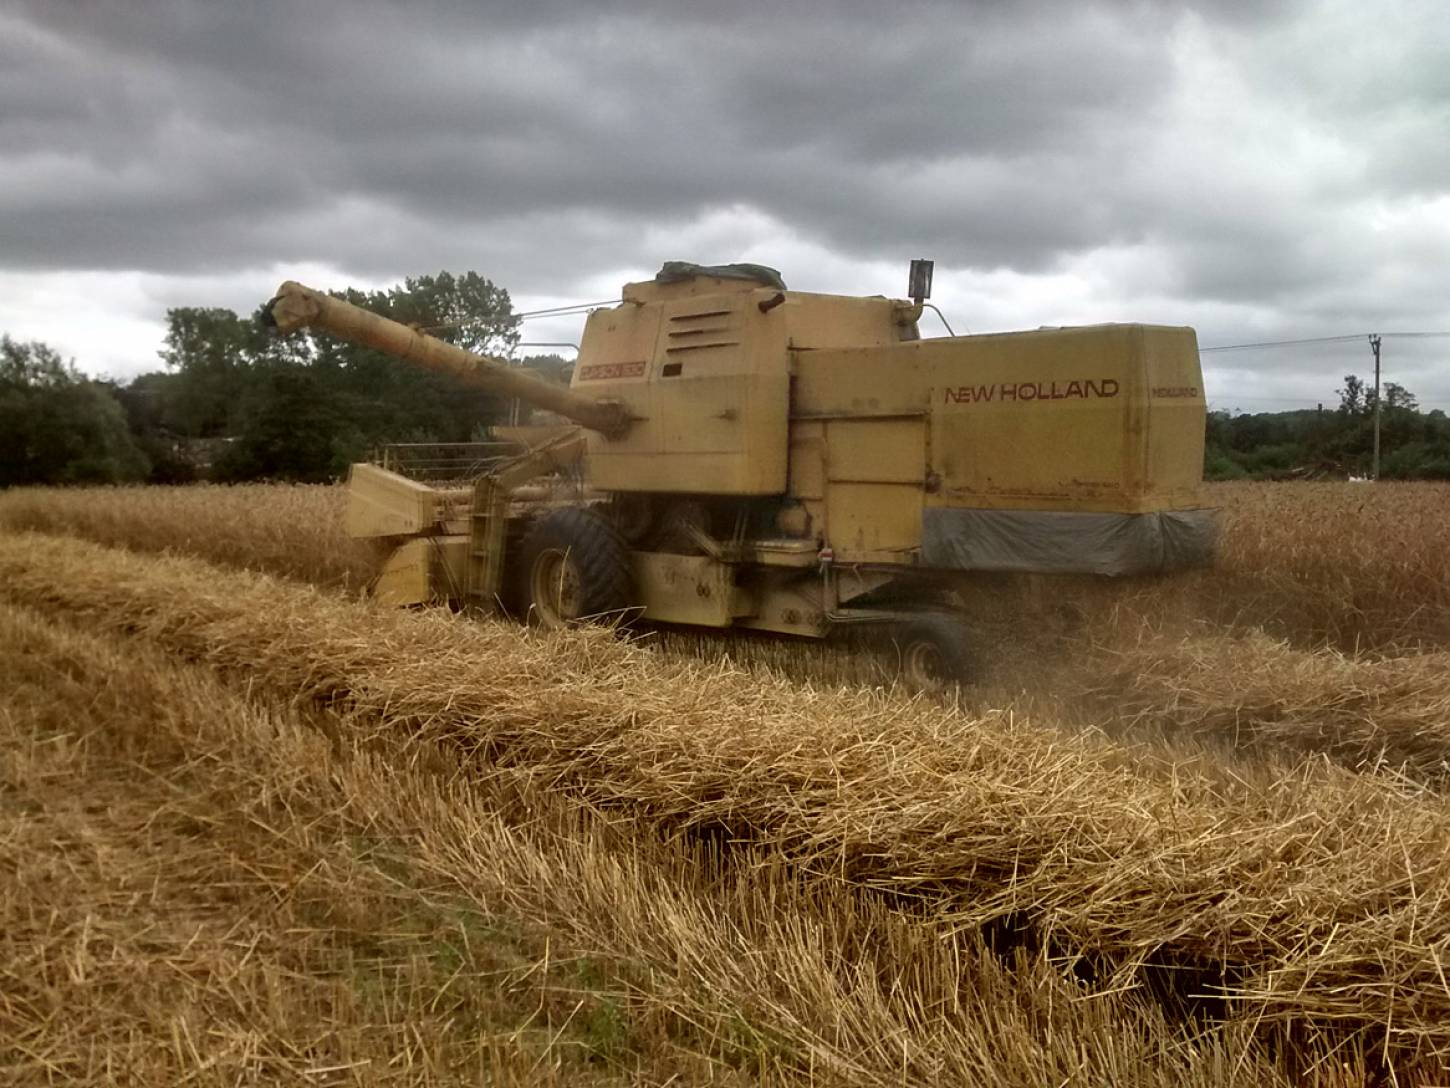 WoWo combine harvest - 12:56pm&nbsp;10<sup>th</sup>&nbsp;Aug.&nbsp;'15  <a href='http://maps.google.com/?t=h&q=50.993305,-0.003775&z=15' target=_blank><img src='http://www.brockwell-bake.org.uk/img/marker.png' style='border:none;vertical-align:top' height=16px></a>